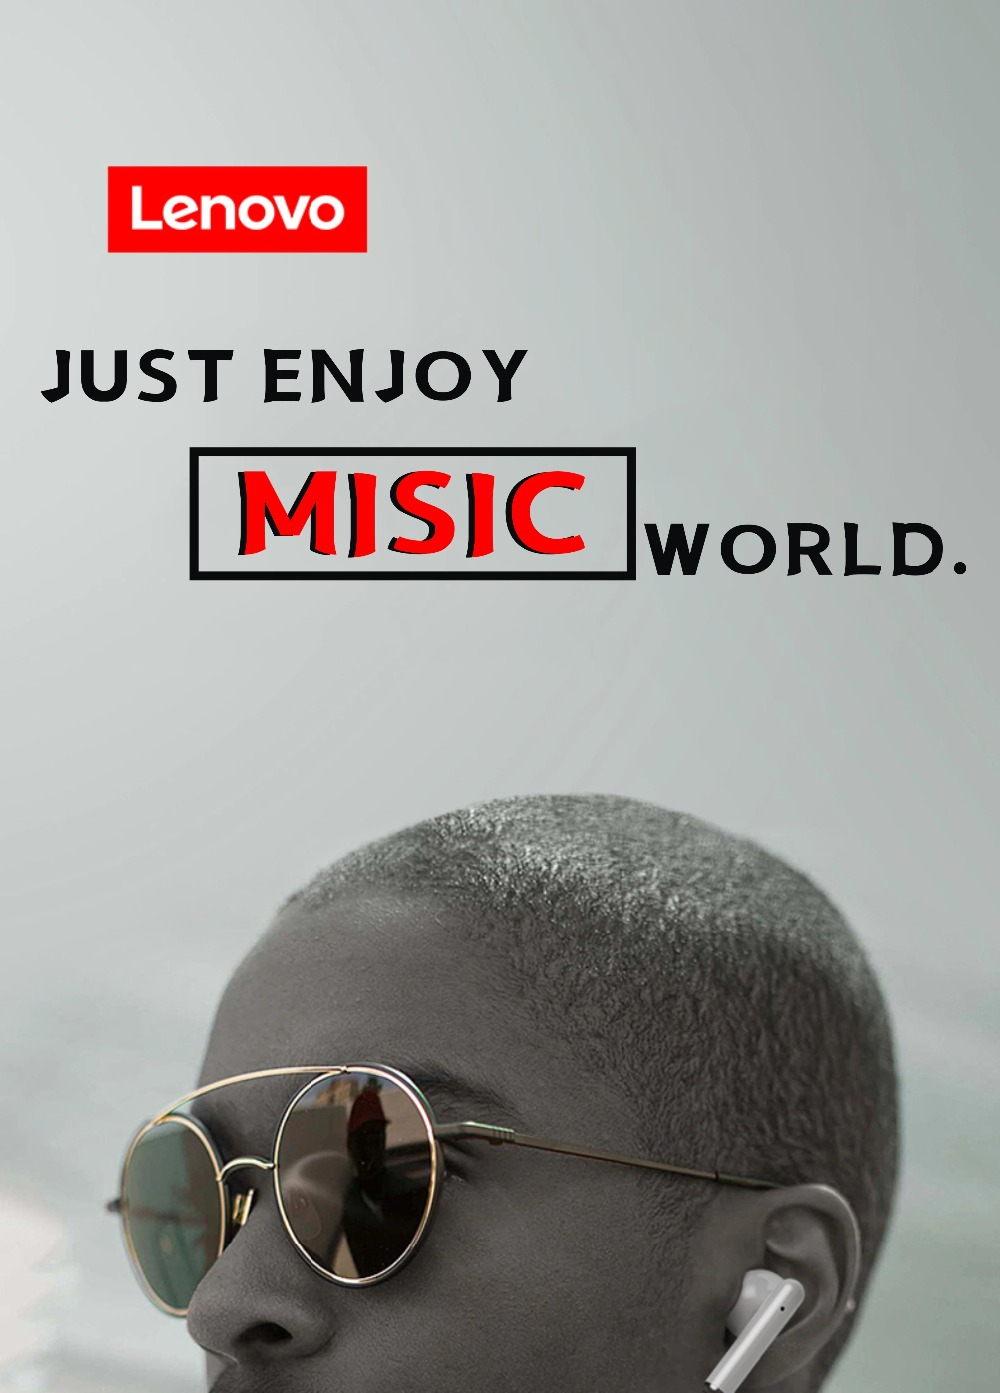 NEW Original Lenovo LP1 TWS Wireless Earphone Bluetooth 5.0 Dual Stereo Noise Reduction Bass Touch Control Long Standby 300mAH (23)